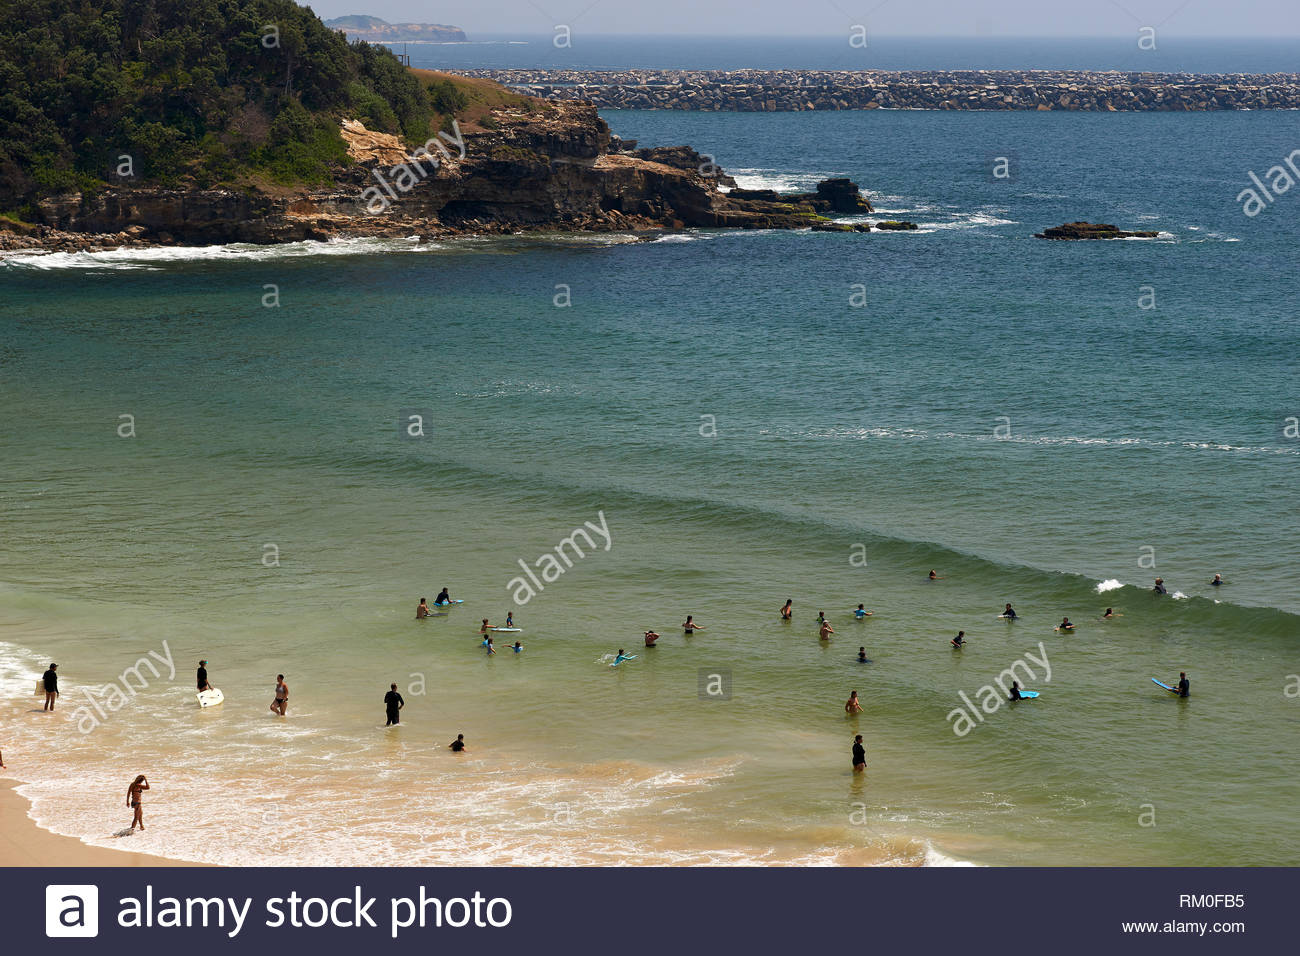 Lots of people cooling off - swimming in the sea, at Yamba Main Beach - during a  hot day of the Australian summer in 2019; at Yamba, NSW, Australia. - Stock Image